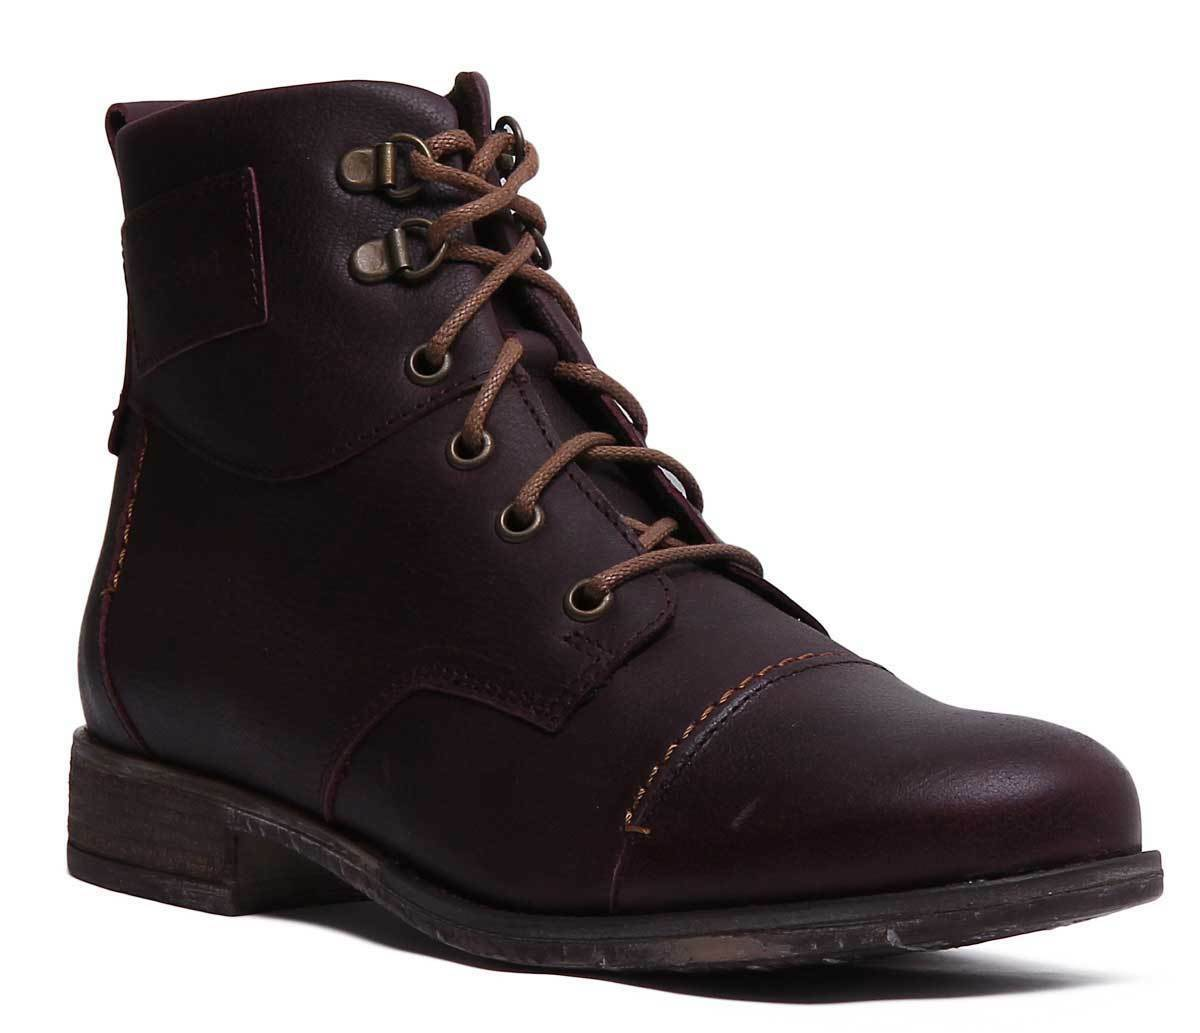 Josef Seibel Sienna 17 Womens Lace up Chelsea Bordo Ankle Boots Size UK 3 - 8